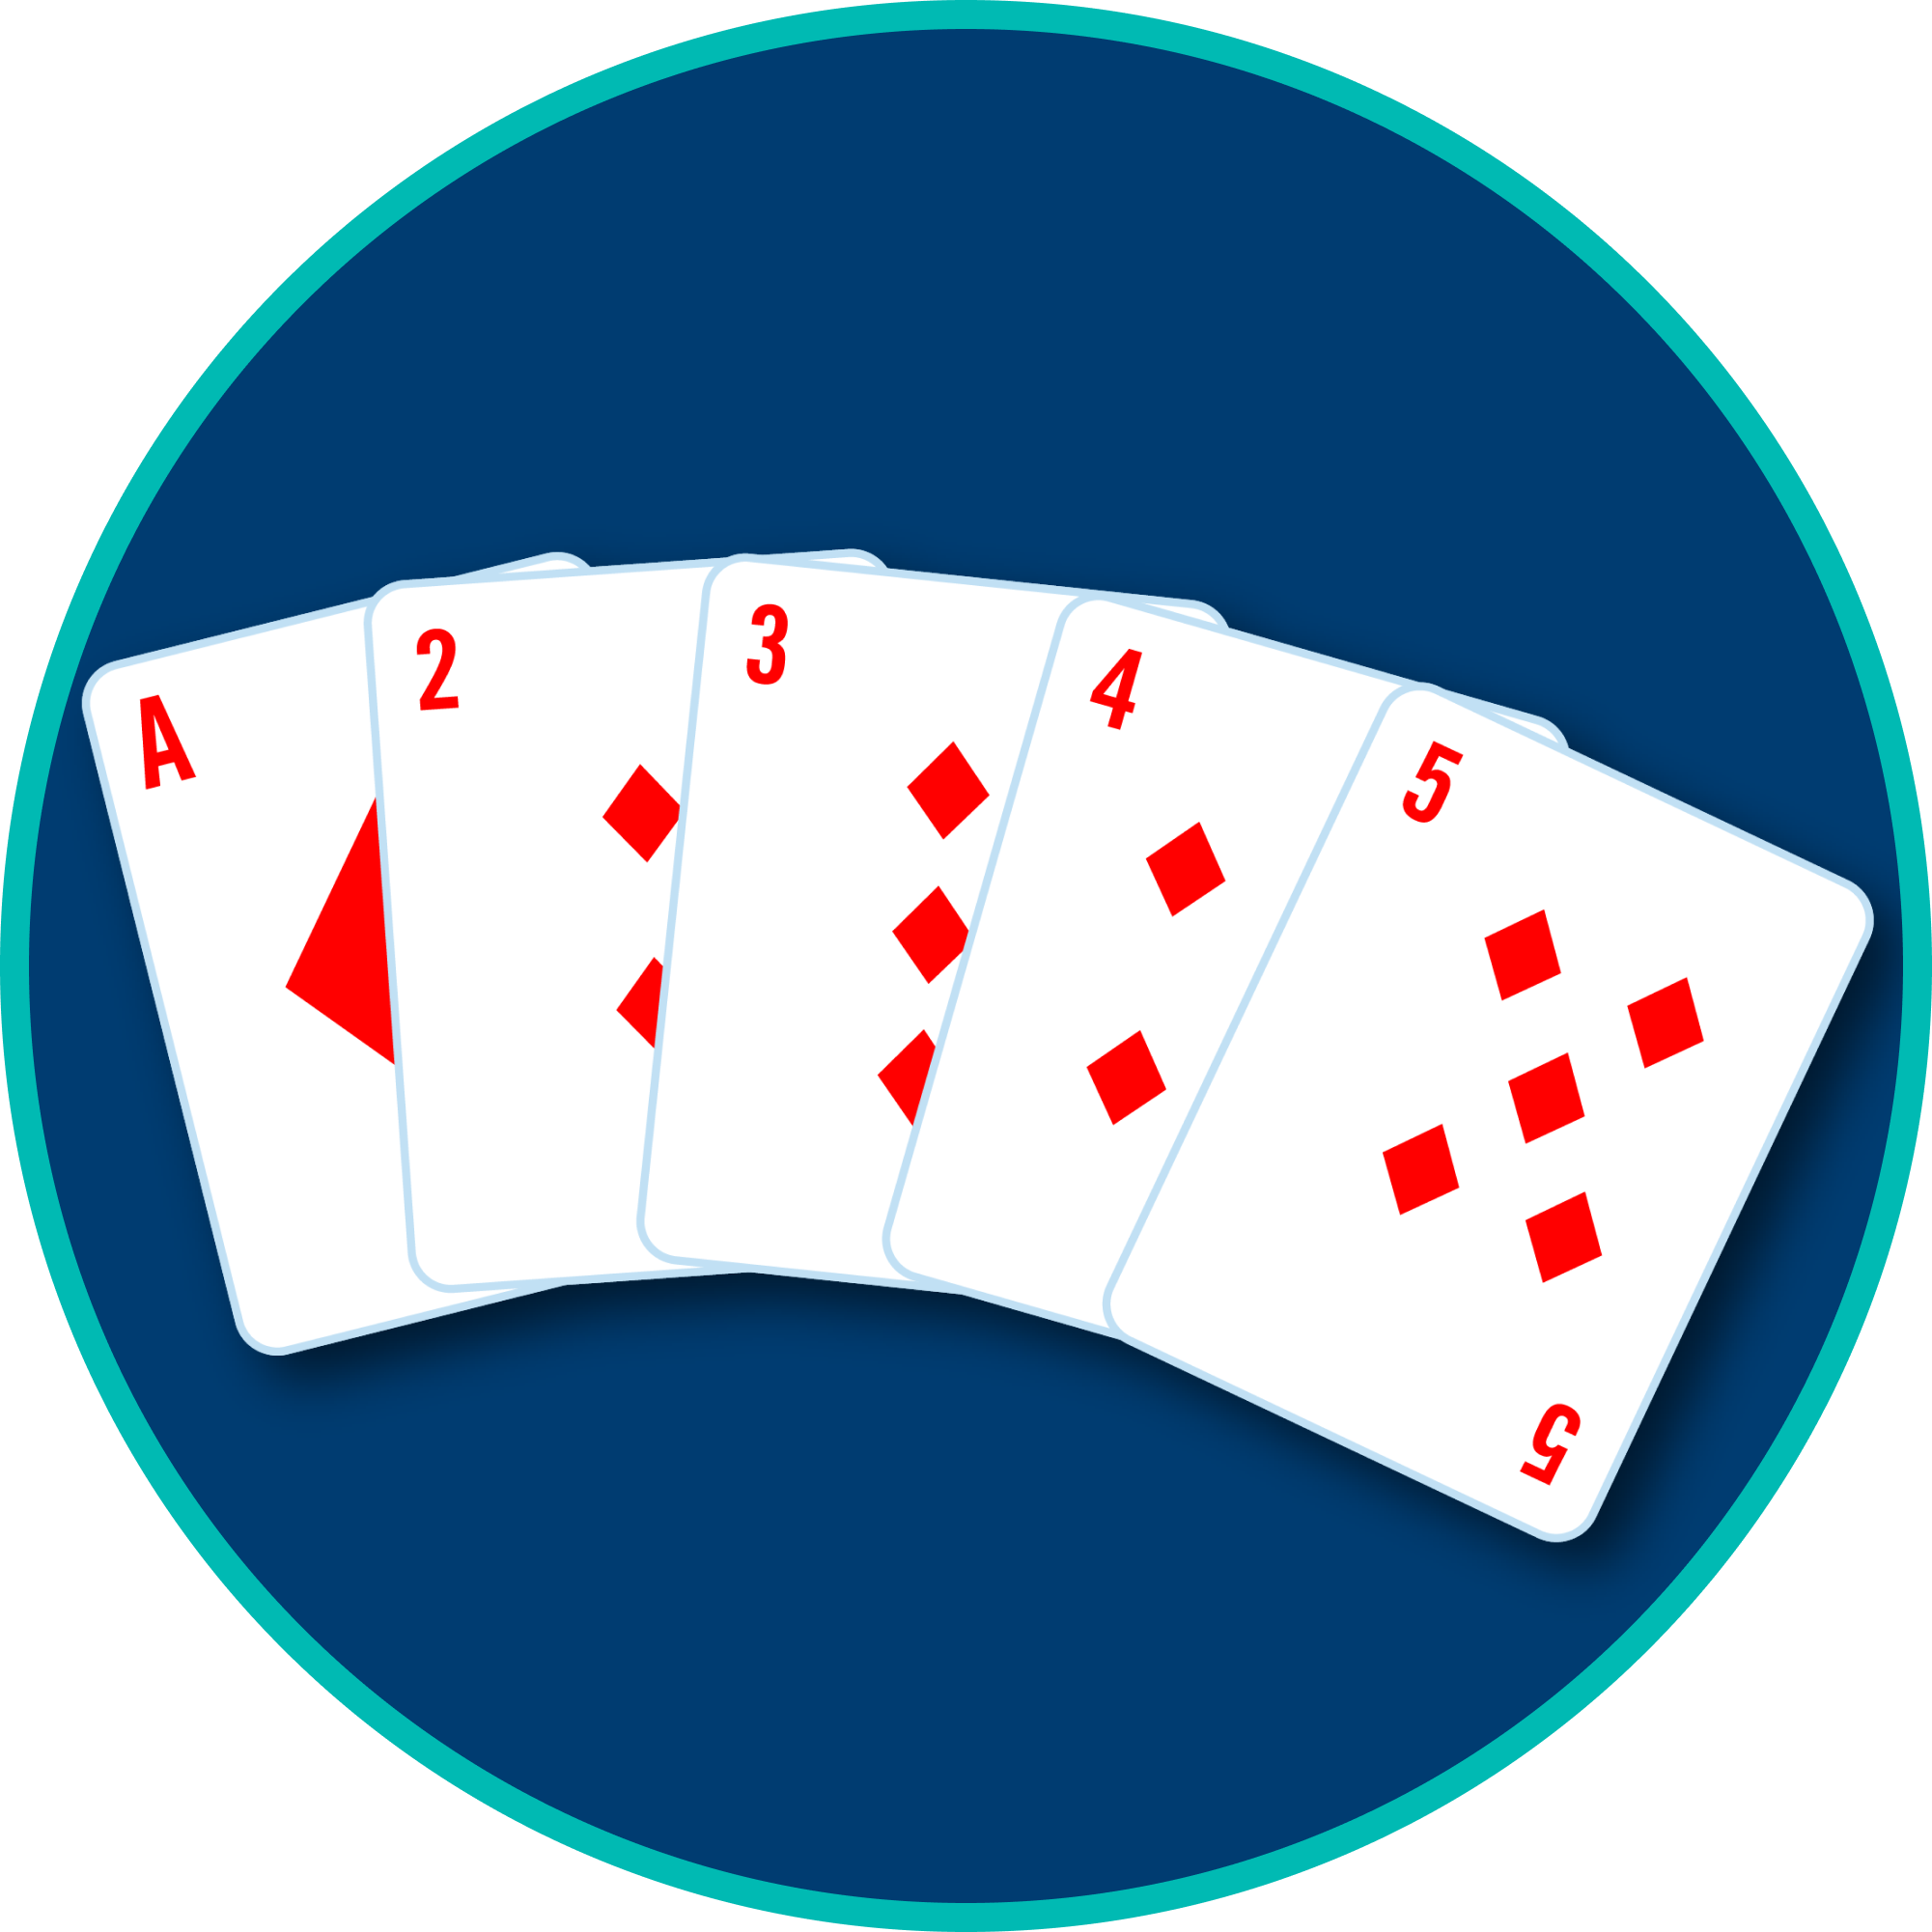 5 cards are shown: an Ace, 2, 3, 4 and 5 of diamonds.